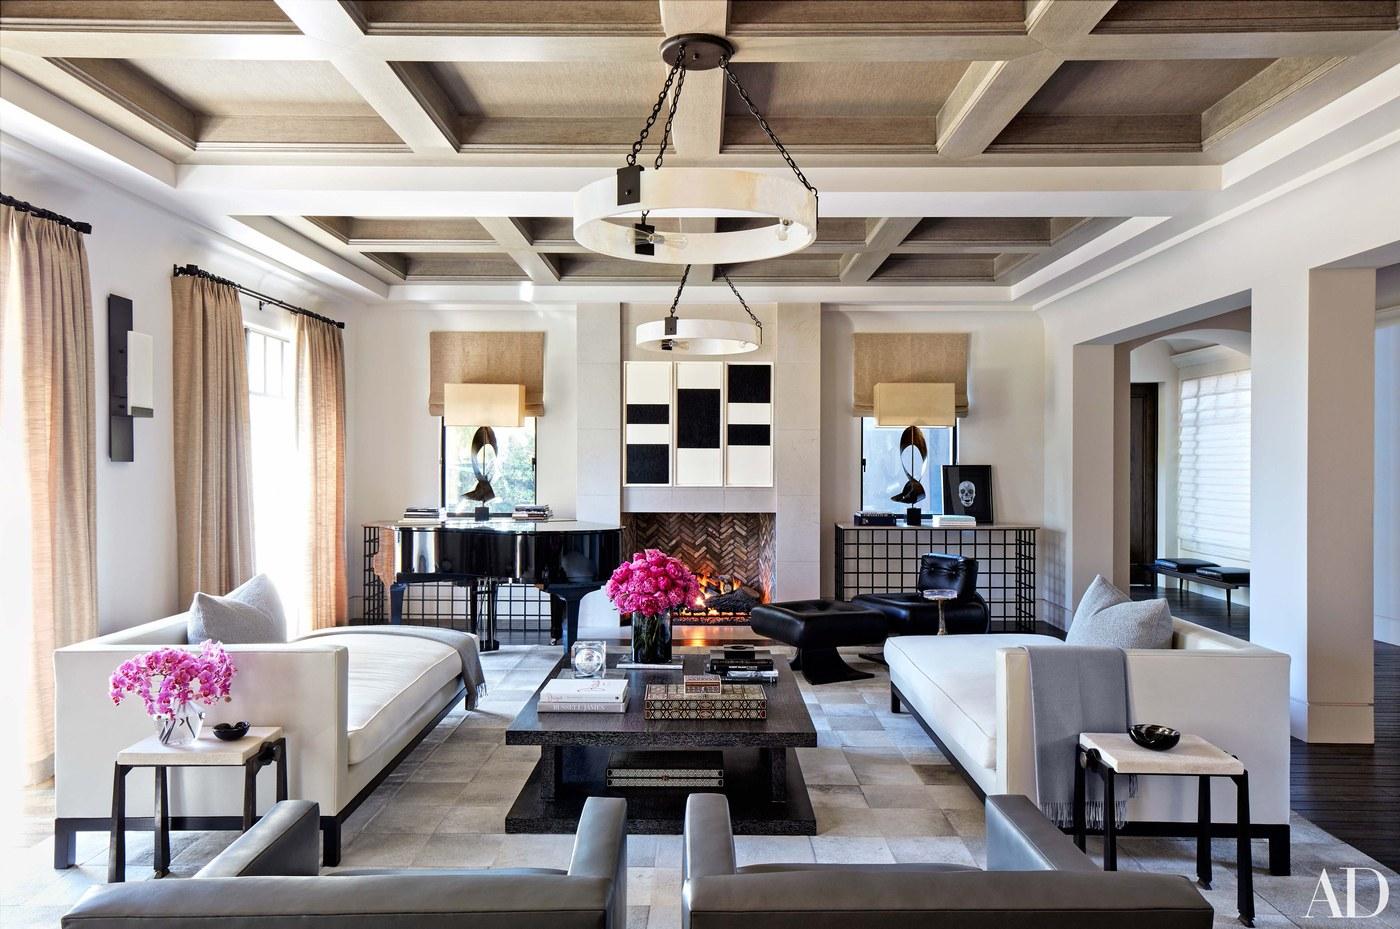 Kourtney Kardashian's California home includes a resplendent coffered ceiling.